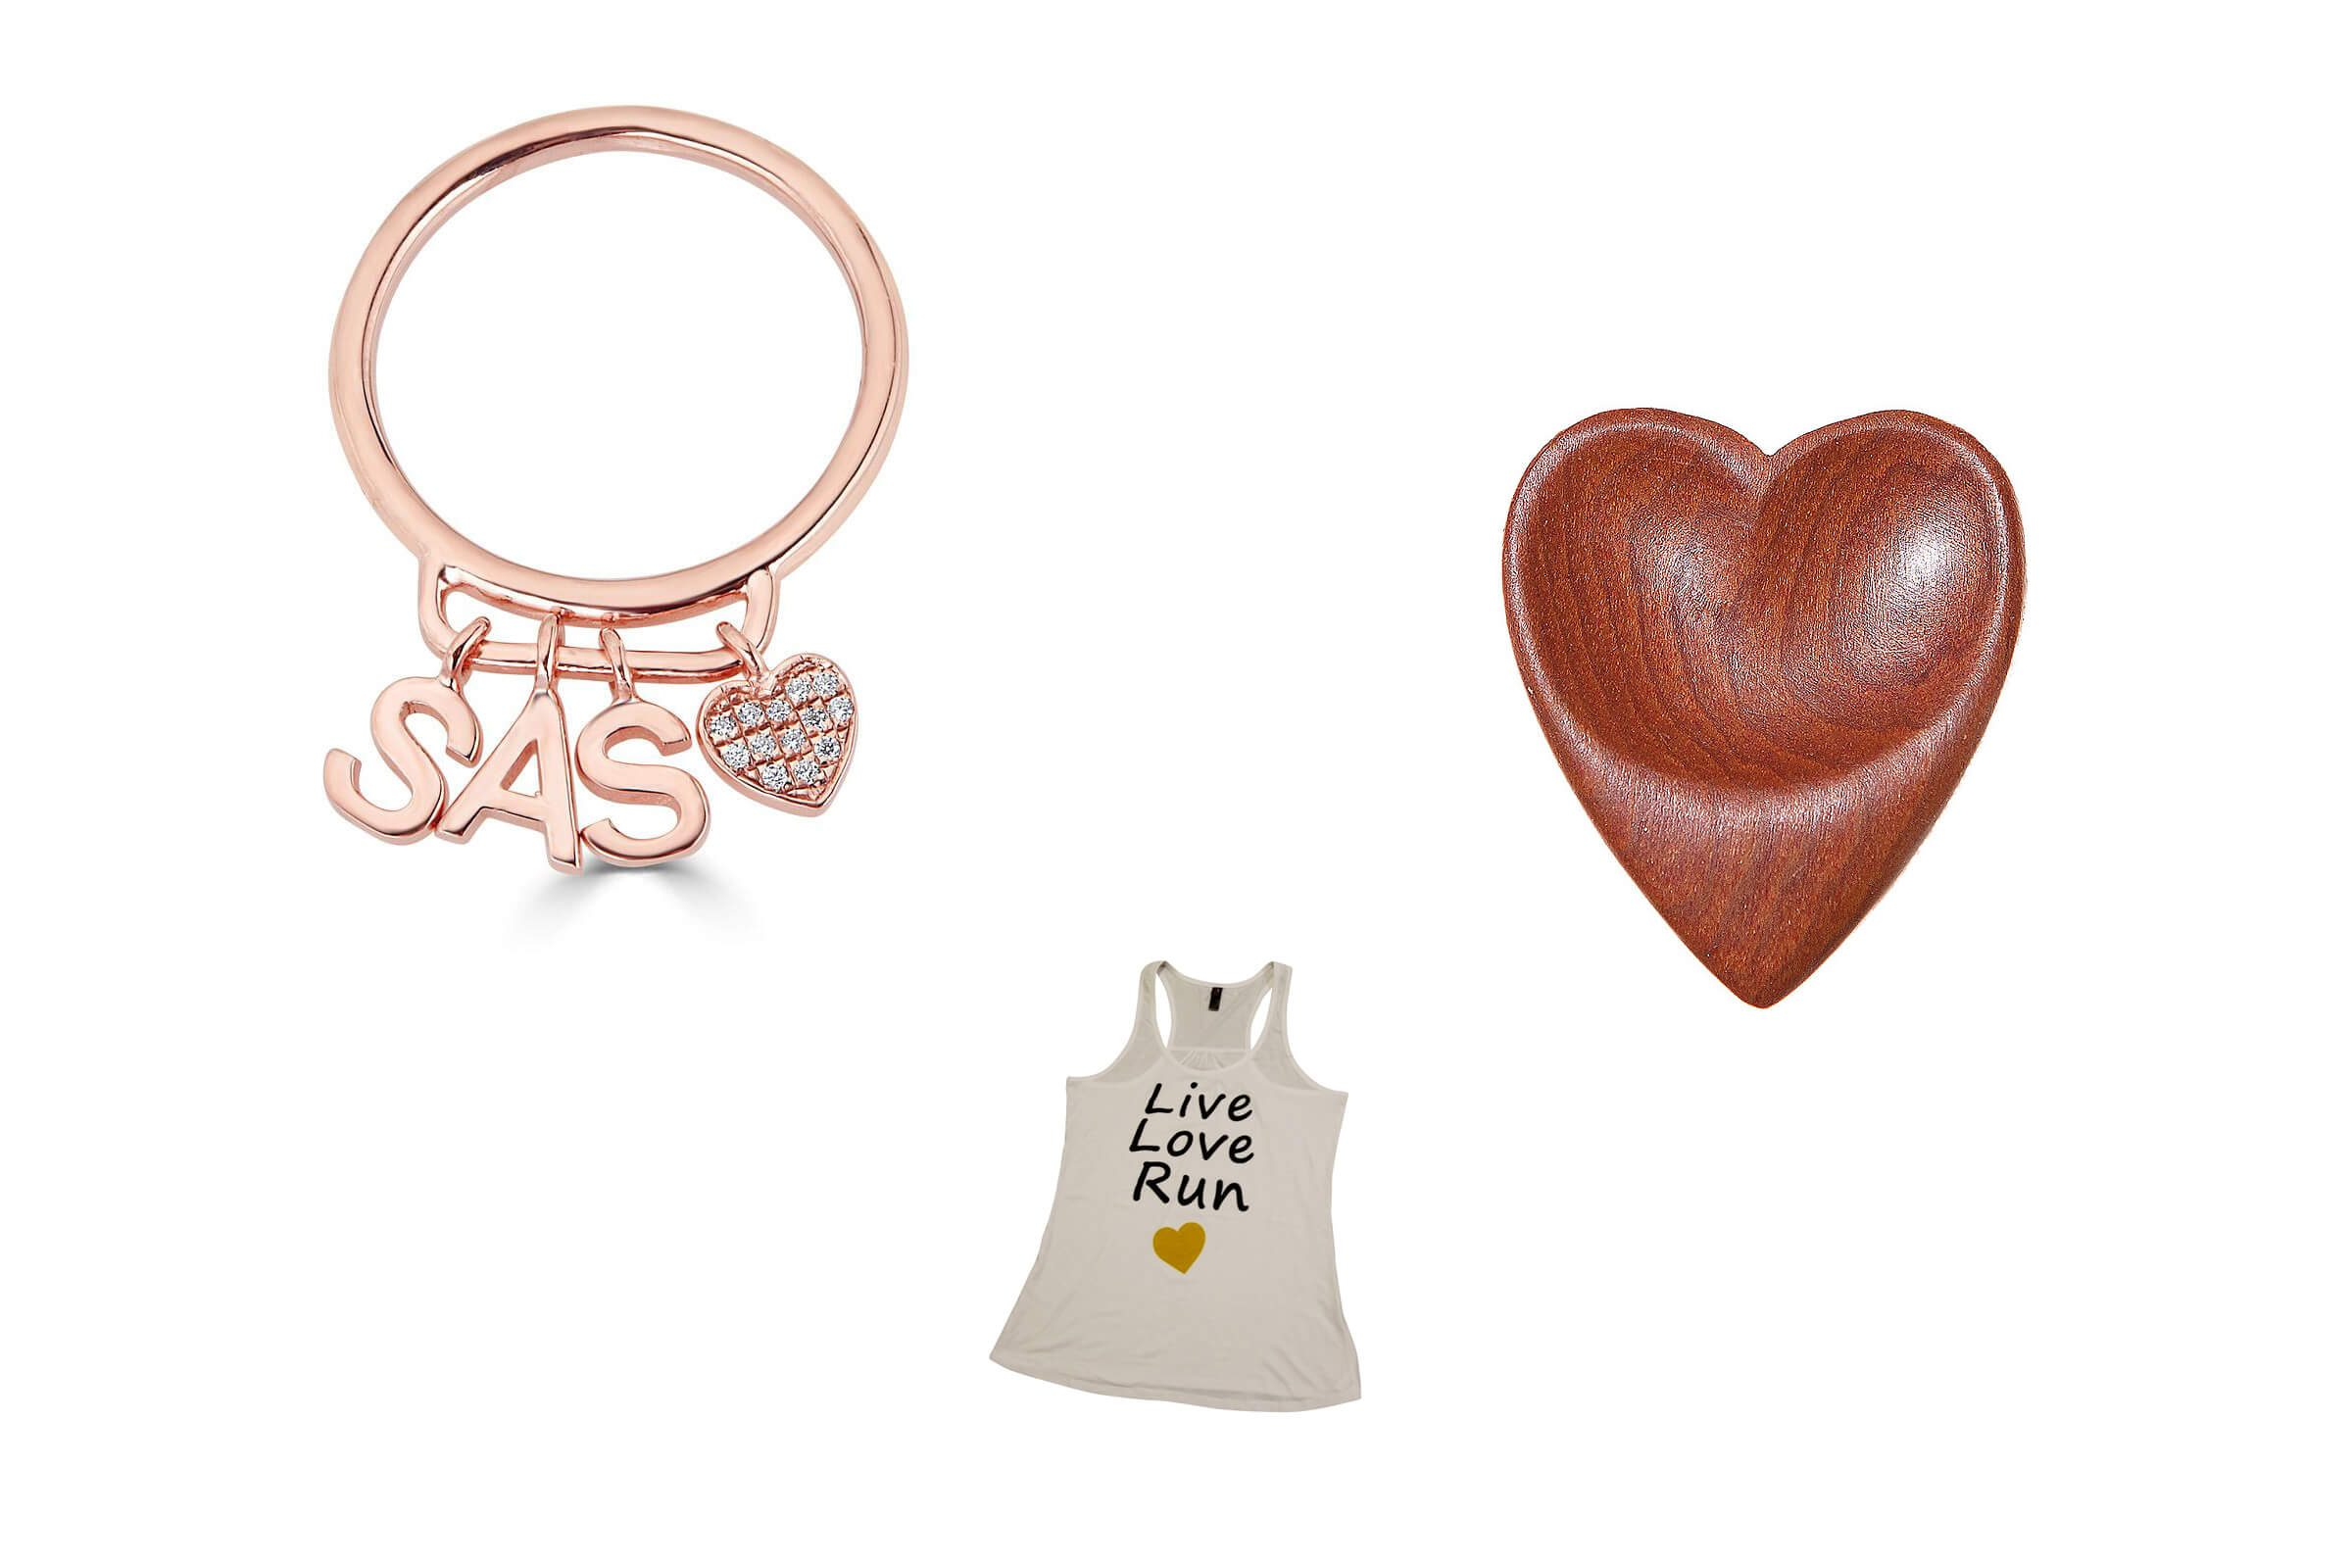 The-Best-Heart-Shaped-Products-for-Valentines-Day